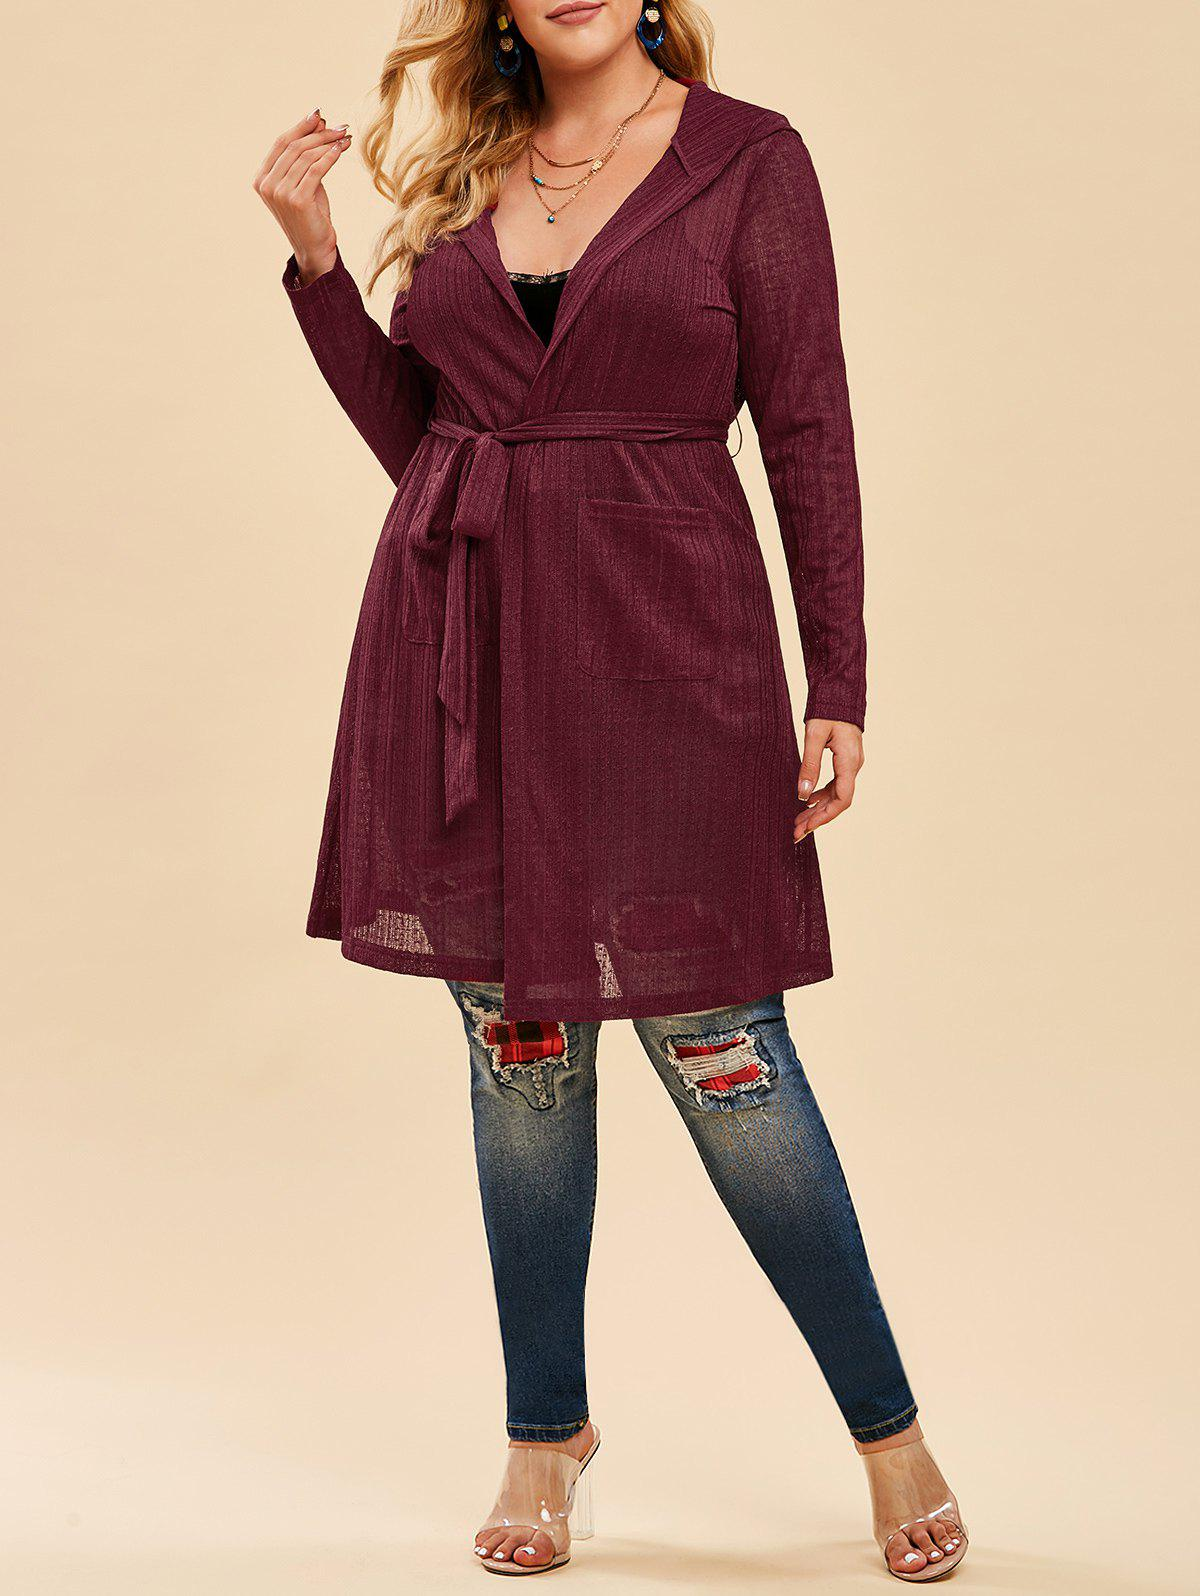 Plus Size Hooded Open Front Belted Cardigan - RED WINE 5X